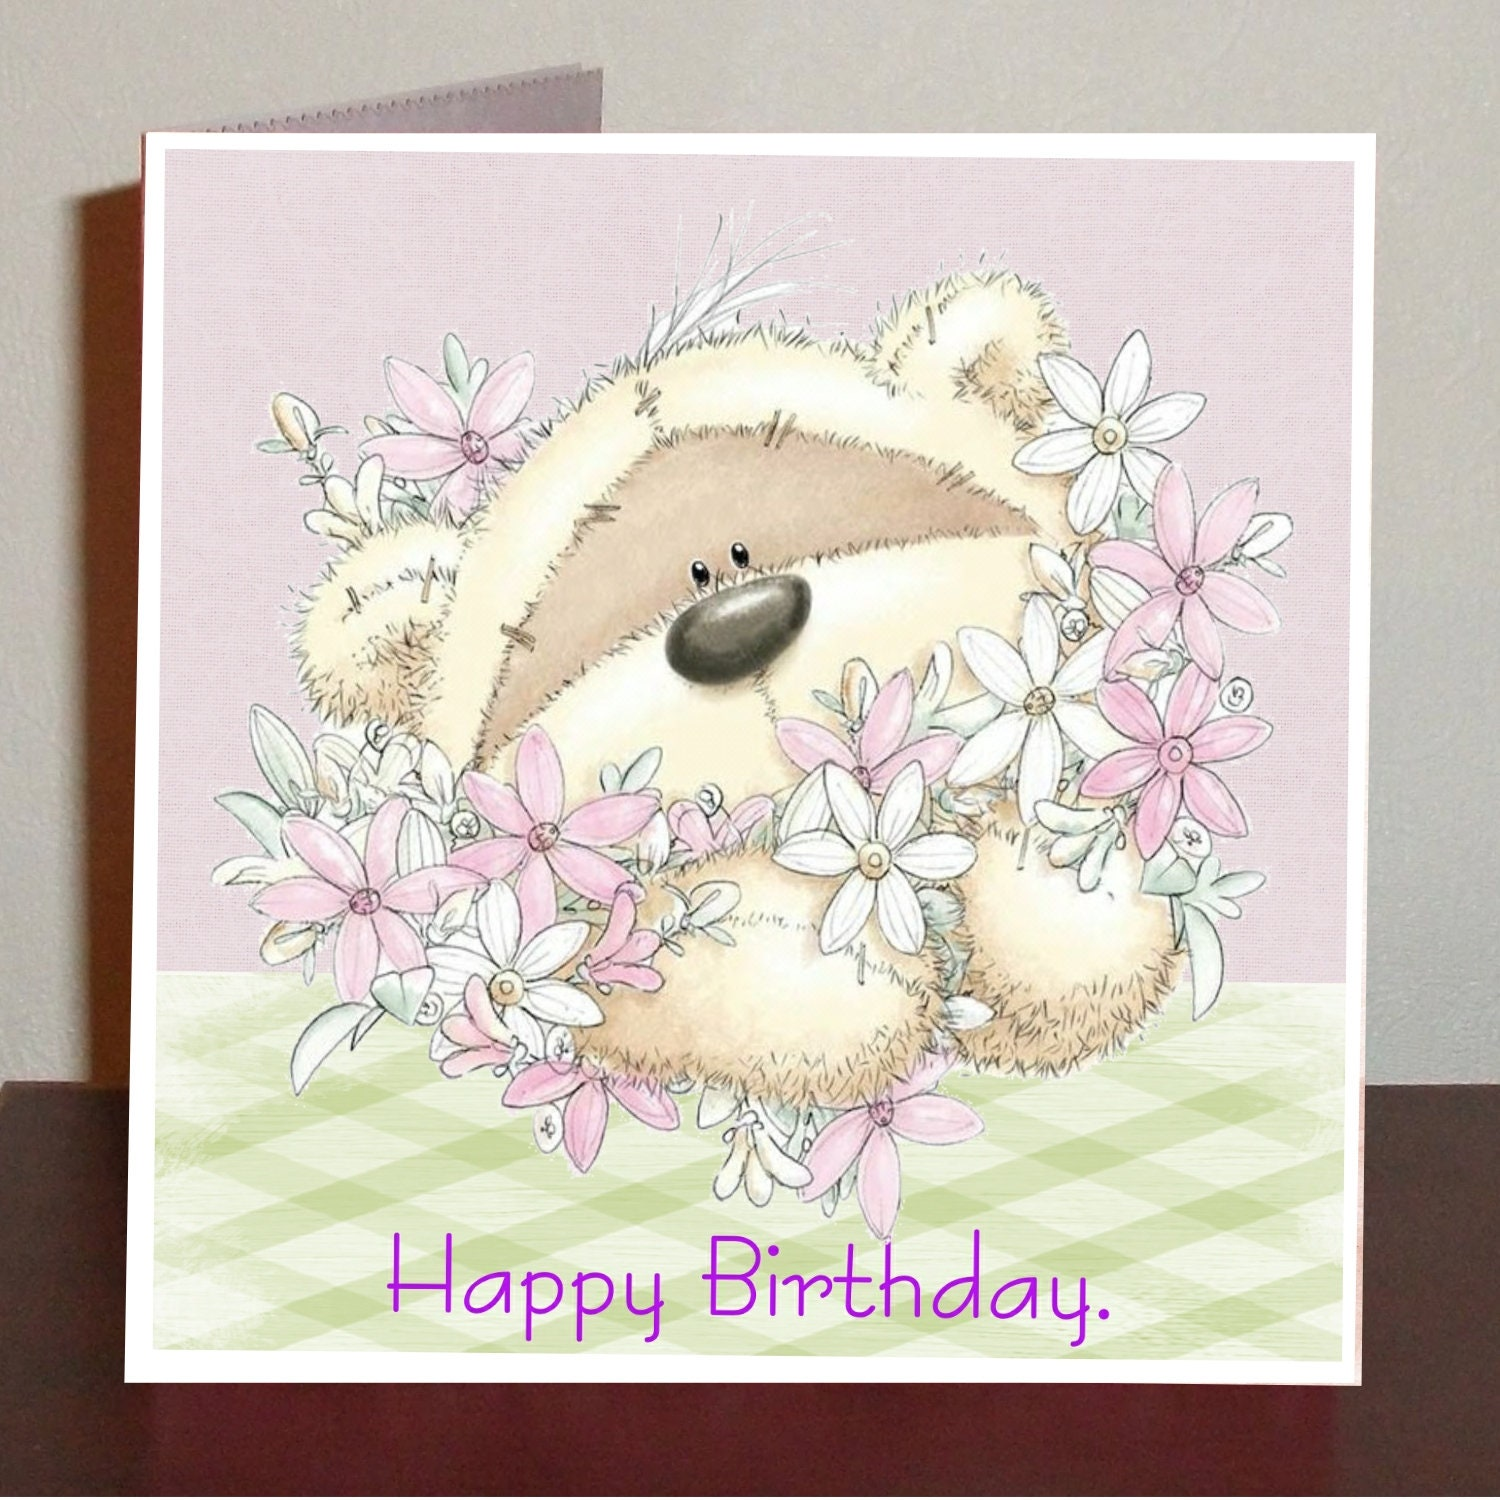 Cute Birthday Card With Teddy And Flowers Etsy